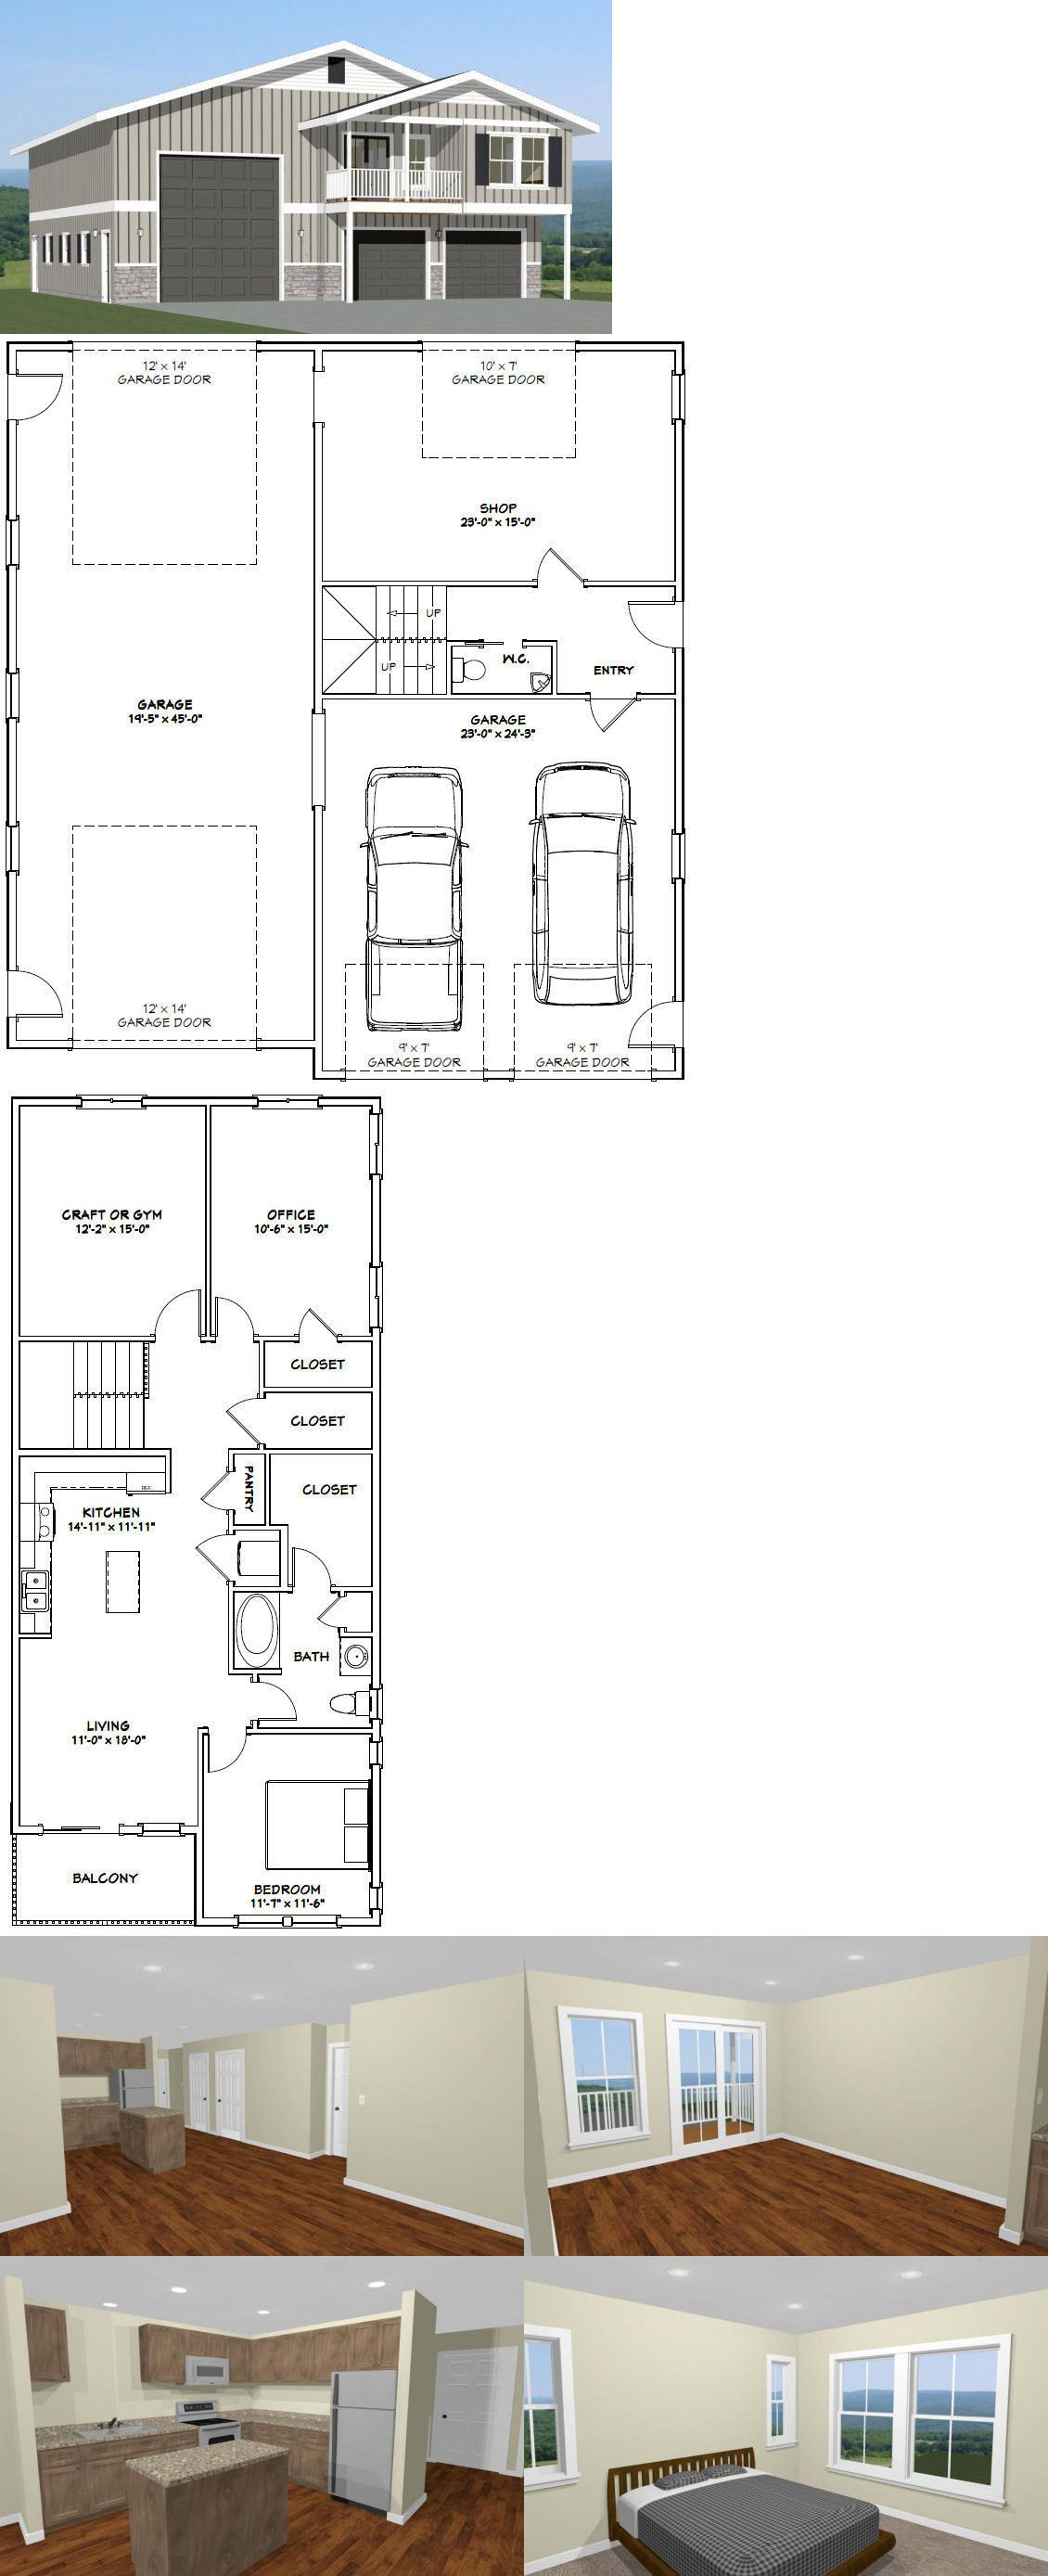 Building Plans And Blueprints 42130 44x48 Apartment With 2 Car 1 Rv Garage Pdf Floorplan 645 Sqft Model 1f It Now Only 29 99 On Ebay